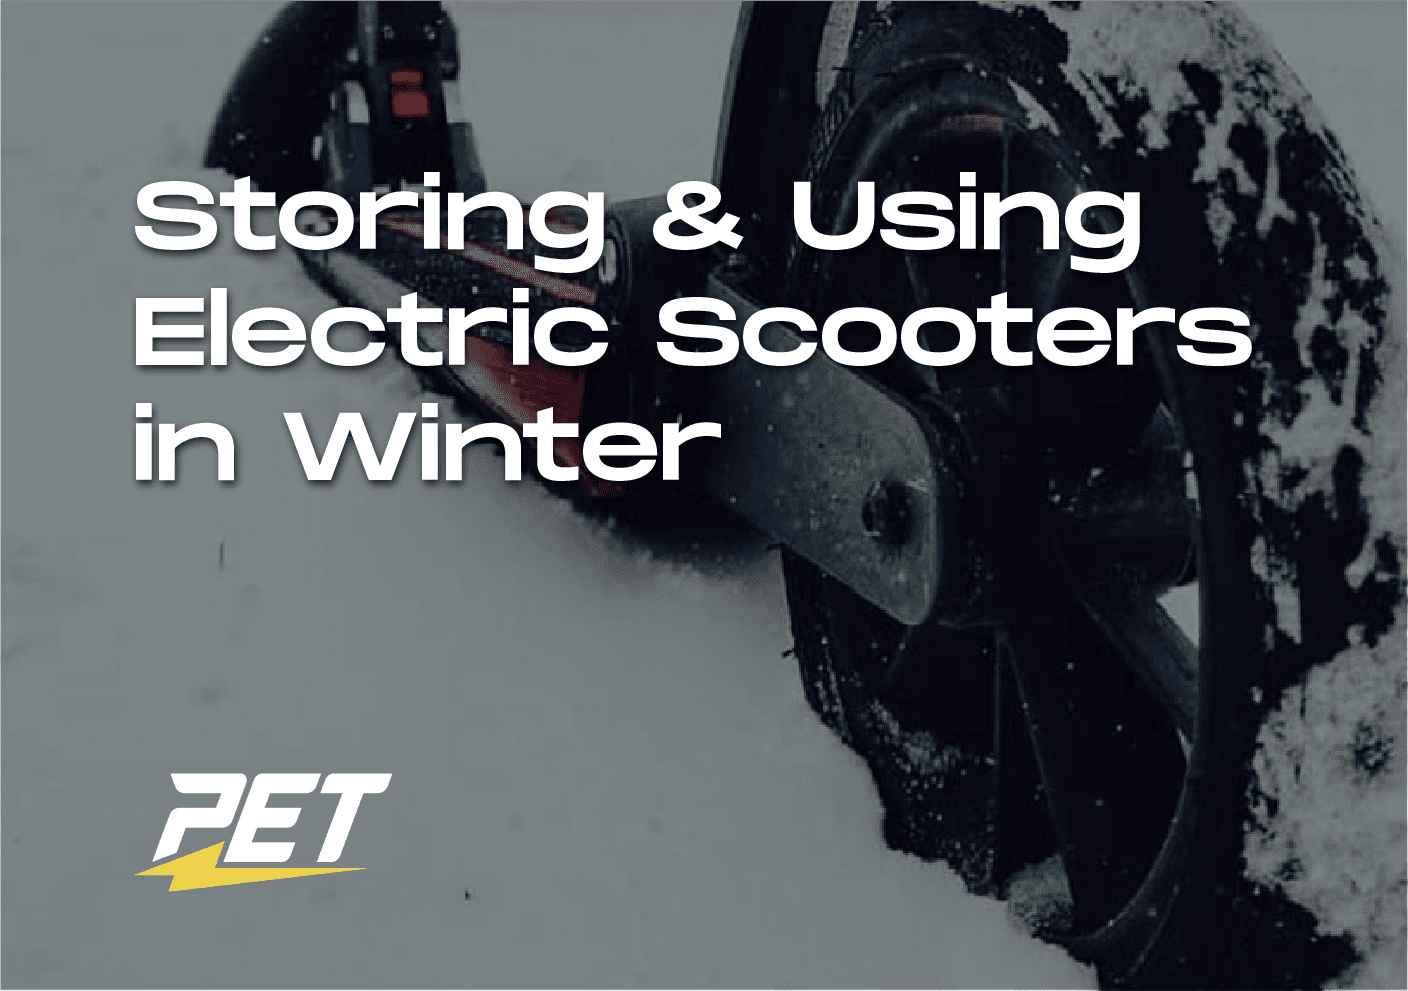 Storing and Using Electric Scooters in Winter